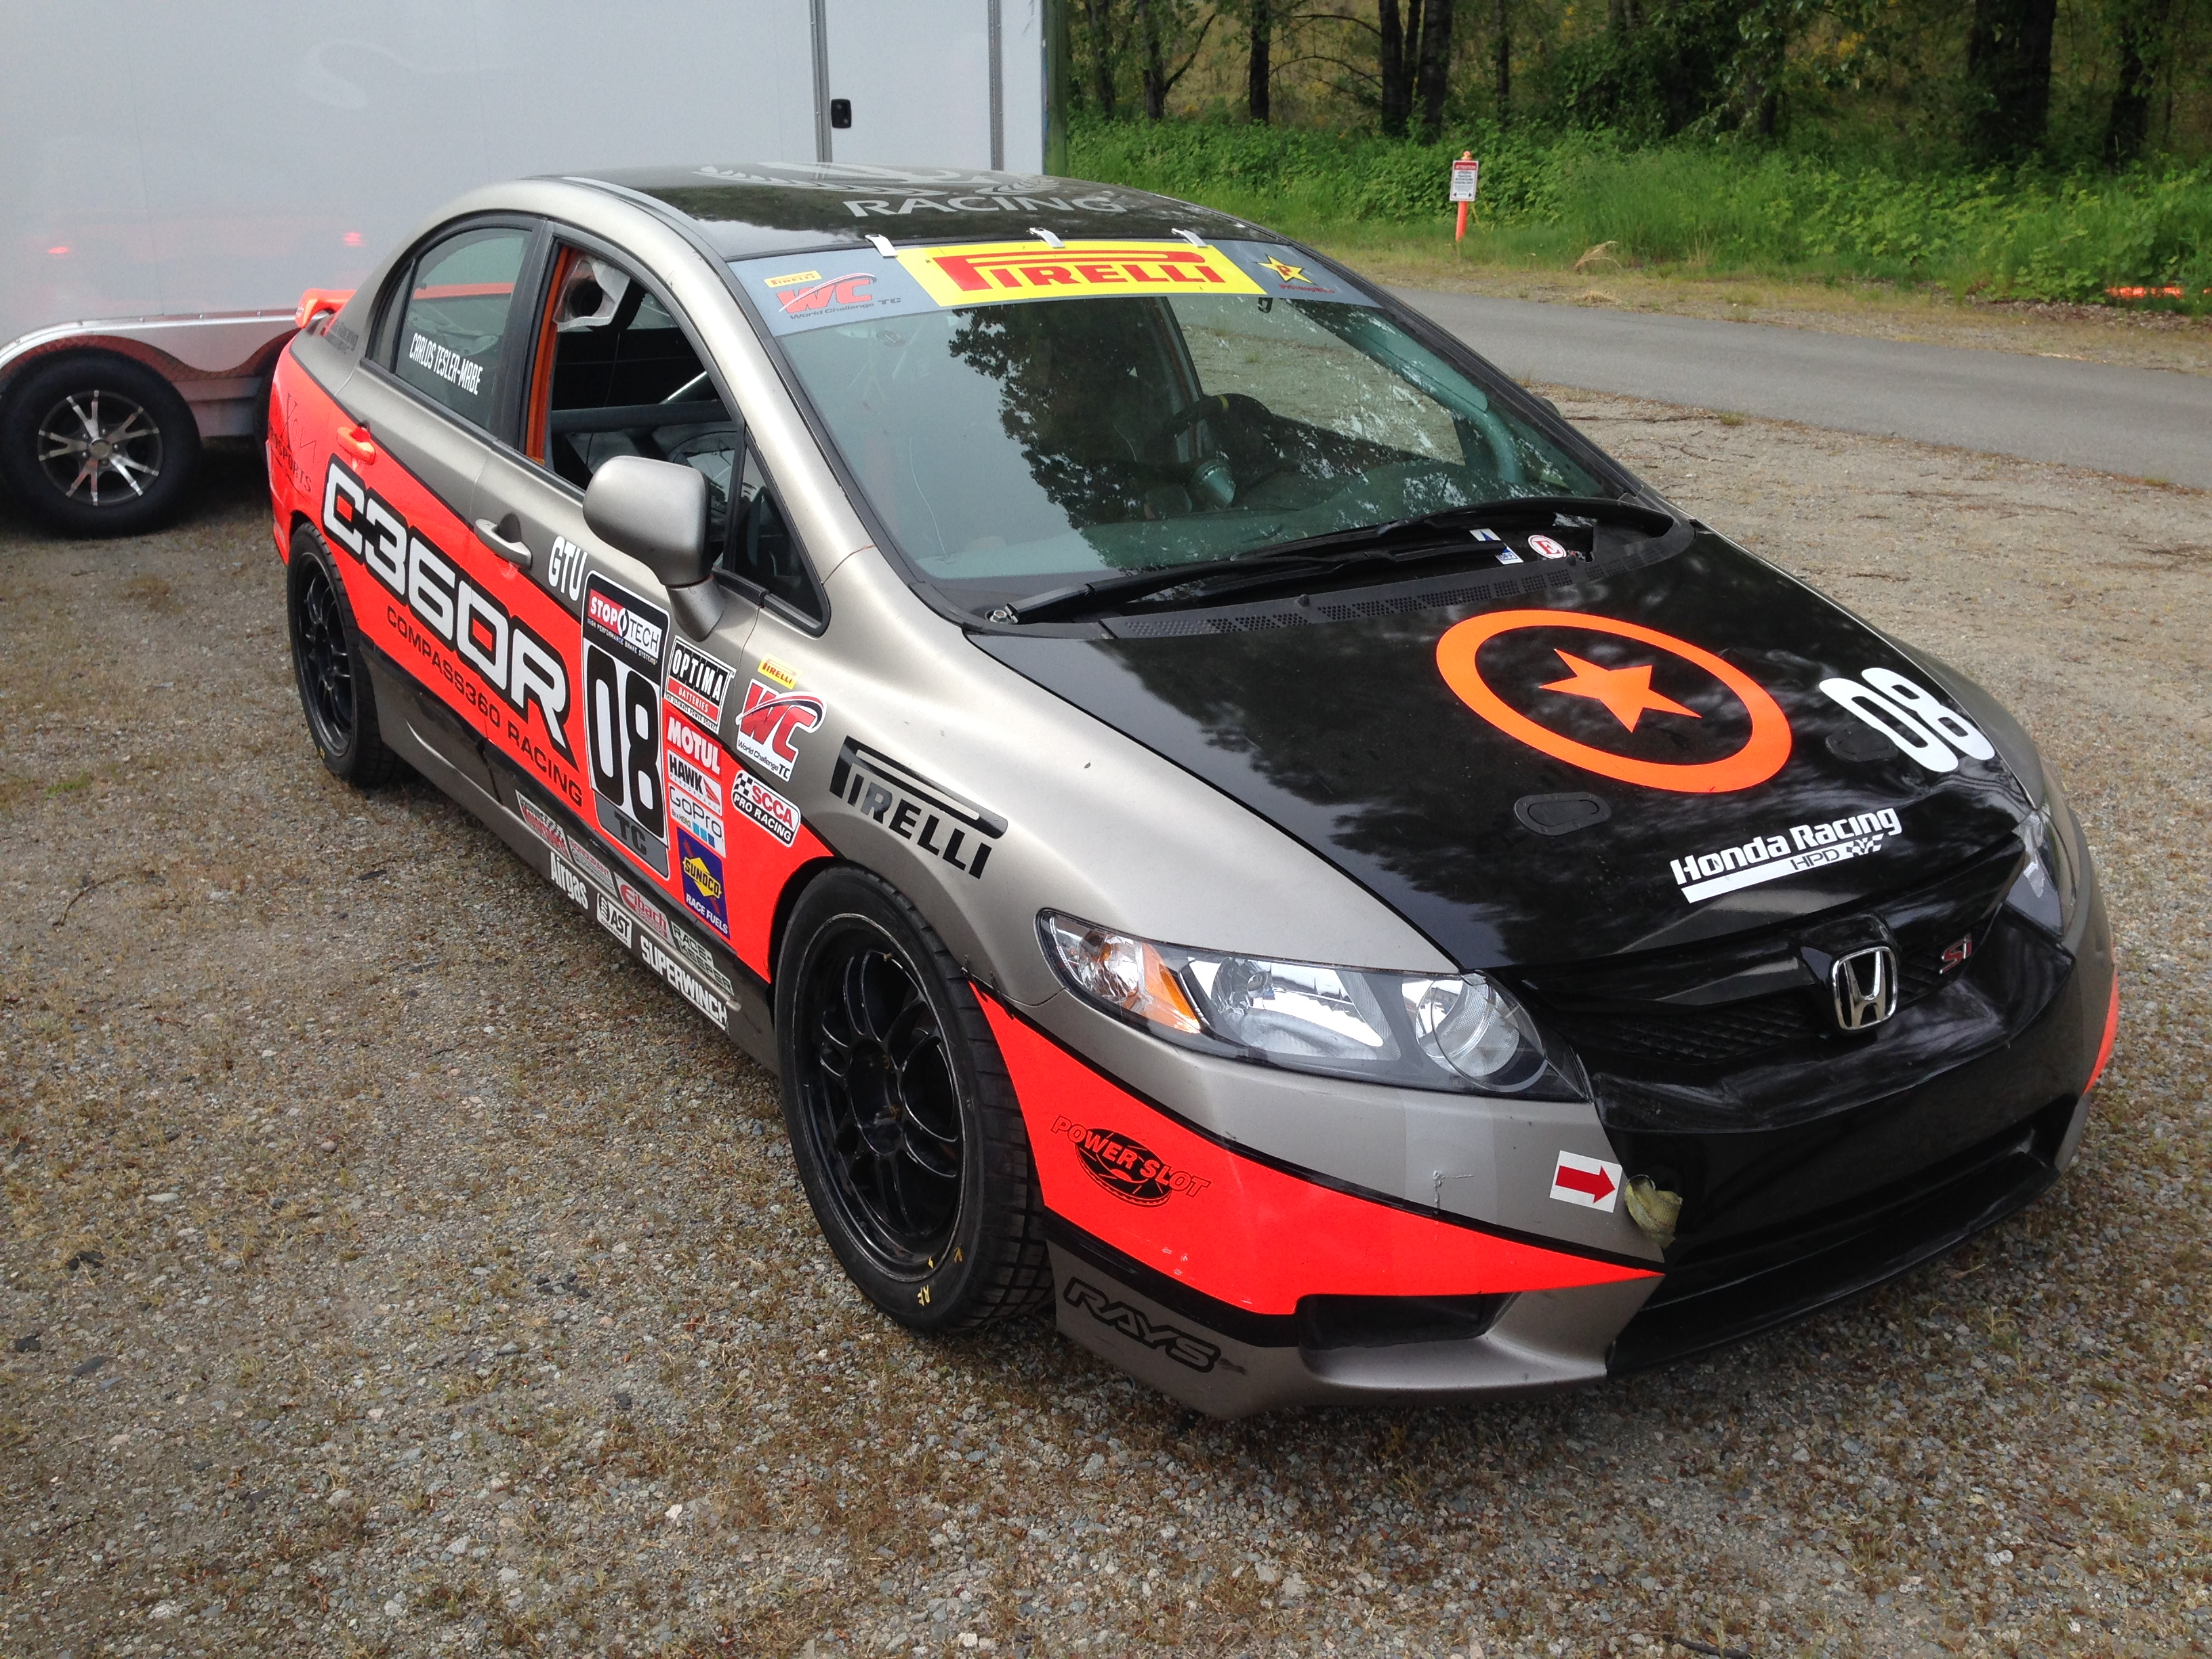 2011 Spec Honda Civic Si Race car for sale For Sale in ...